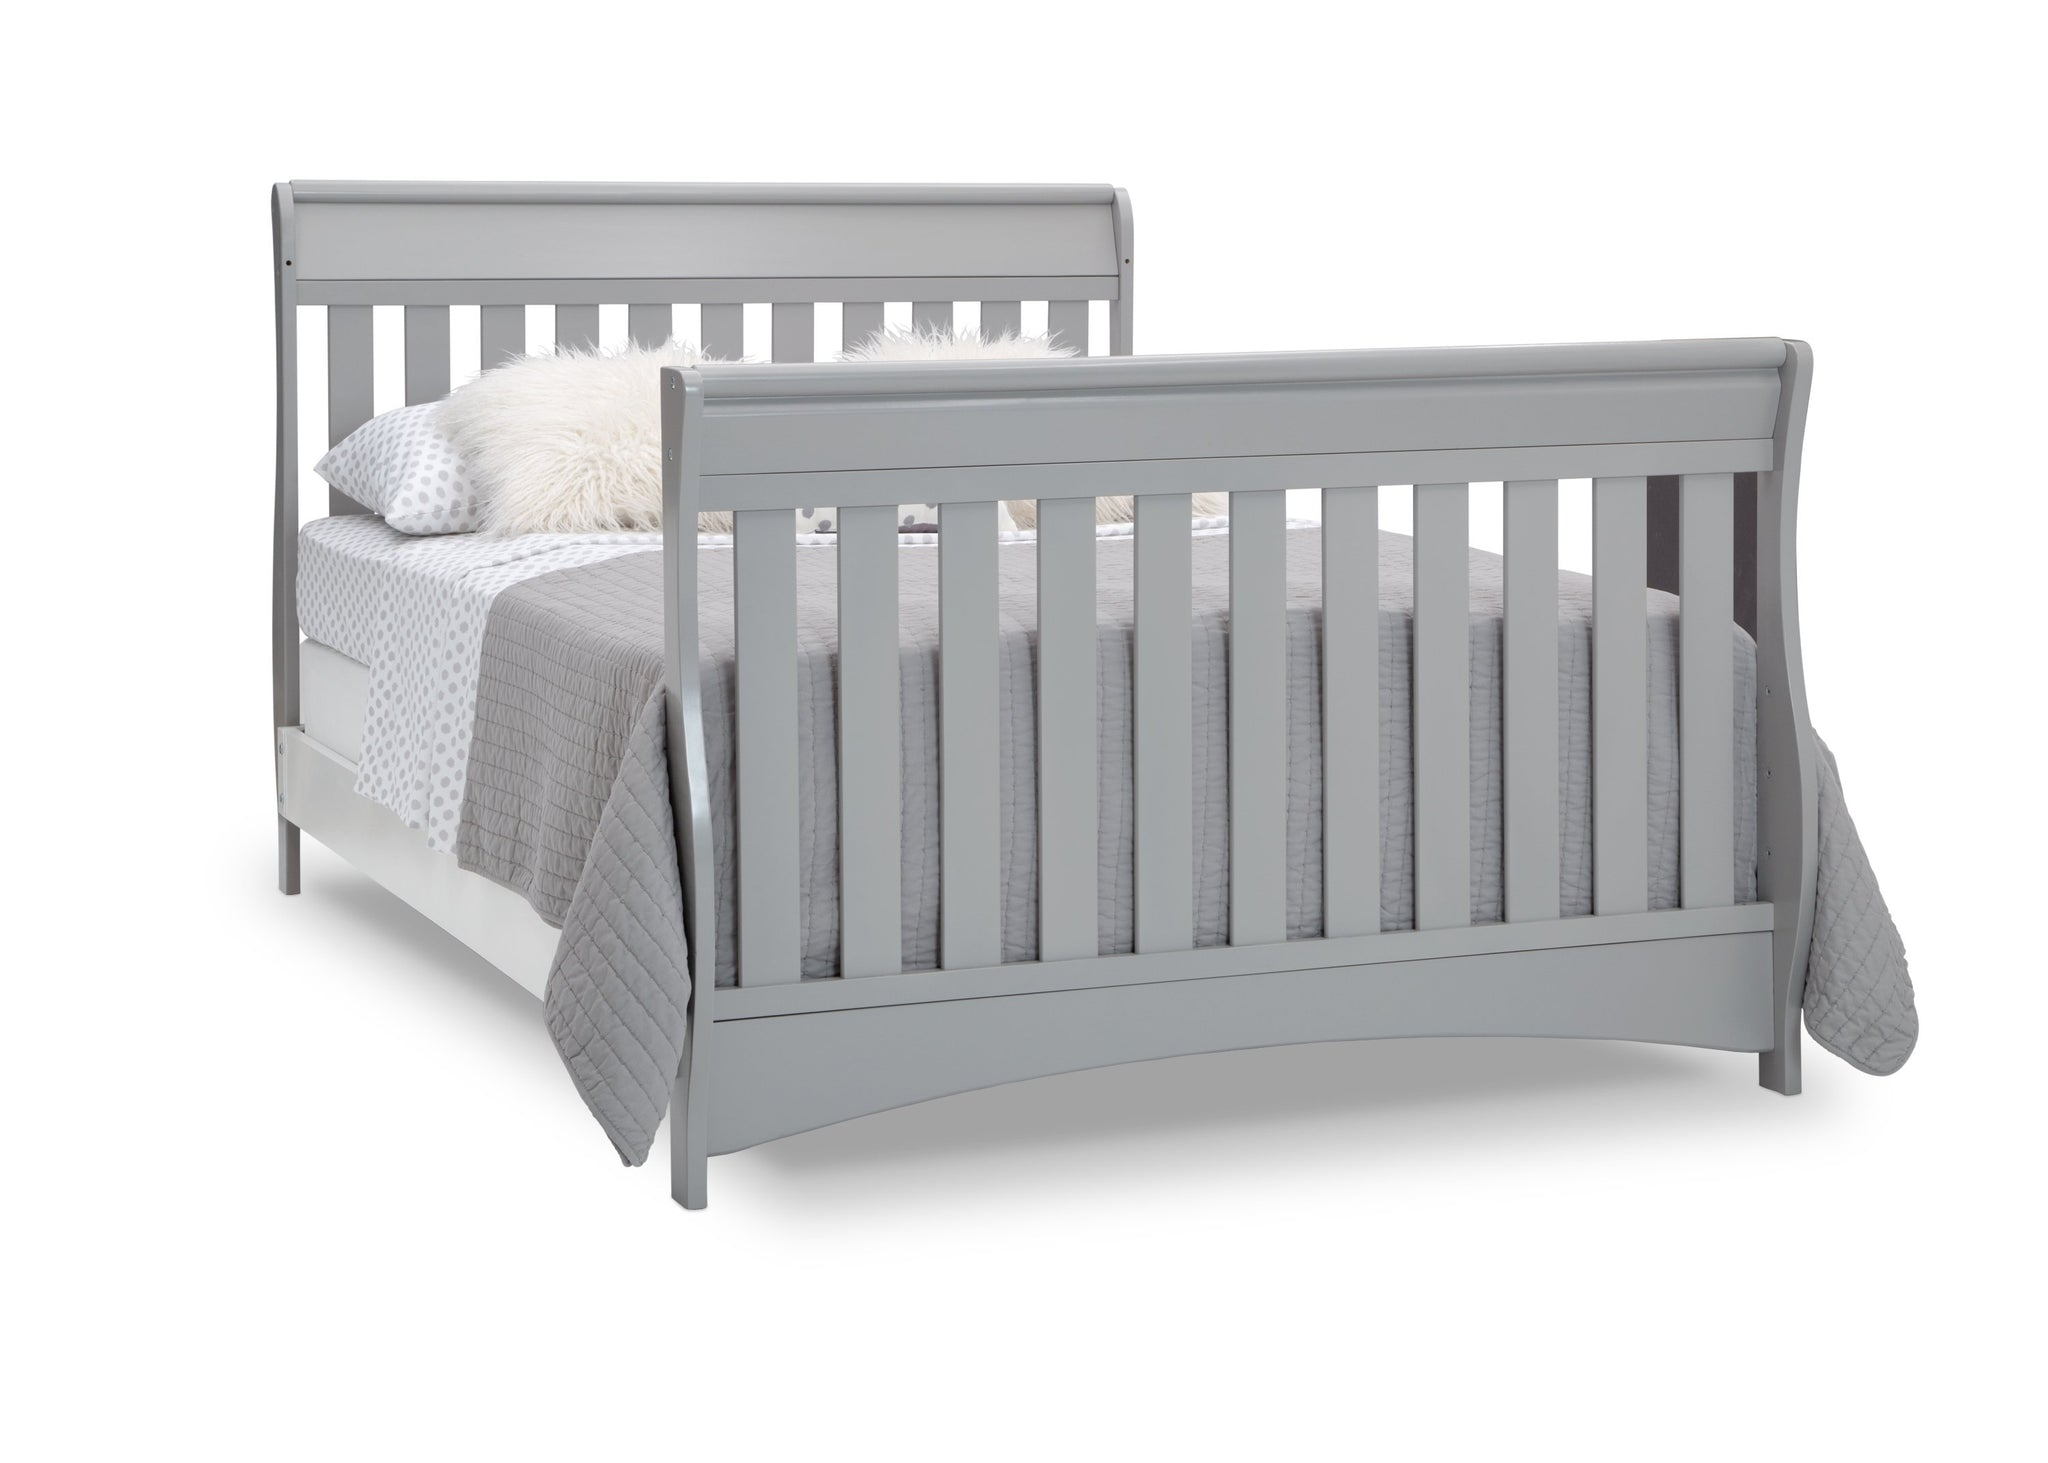 Delta Children Grey (026) Bentley S Series Deluxe 6-in-1 Convertible Crib, Right Full Bed with Headboard and Footboard Silo View